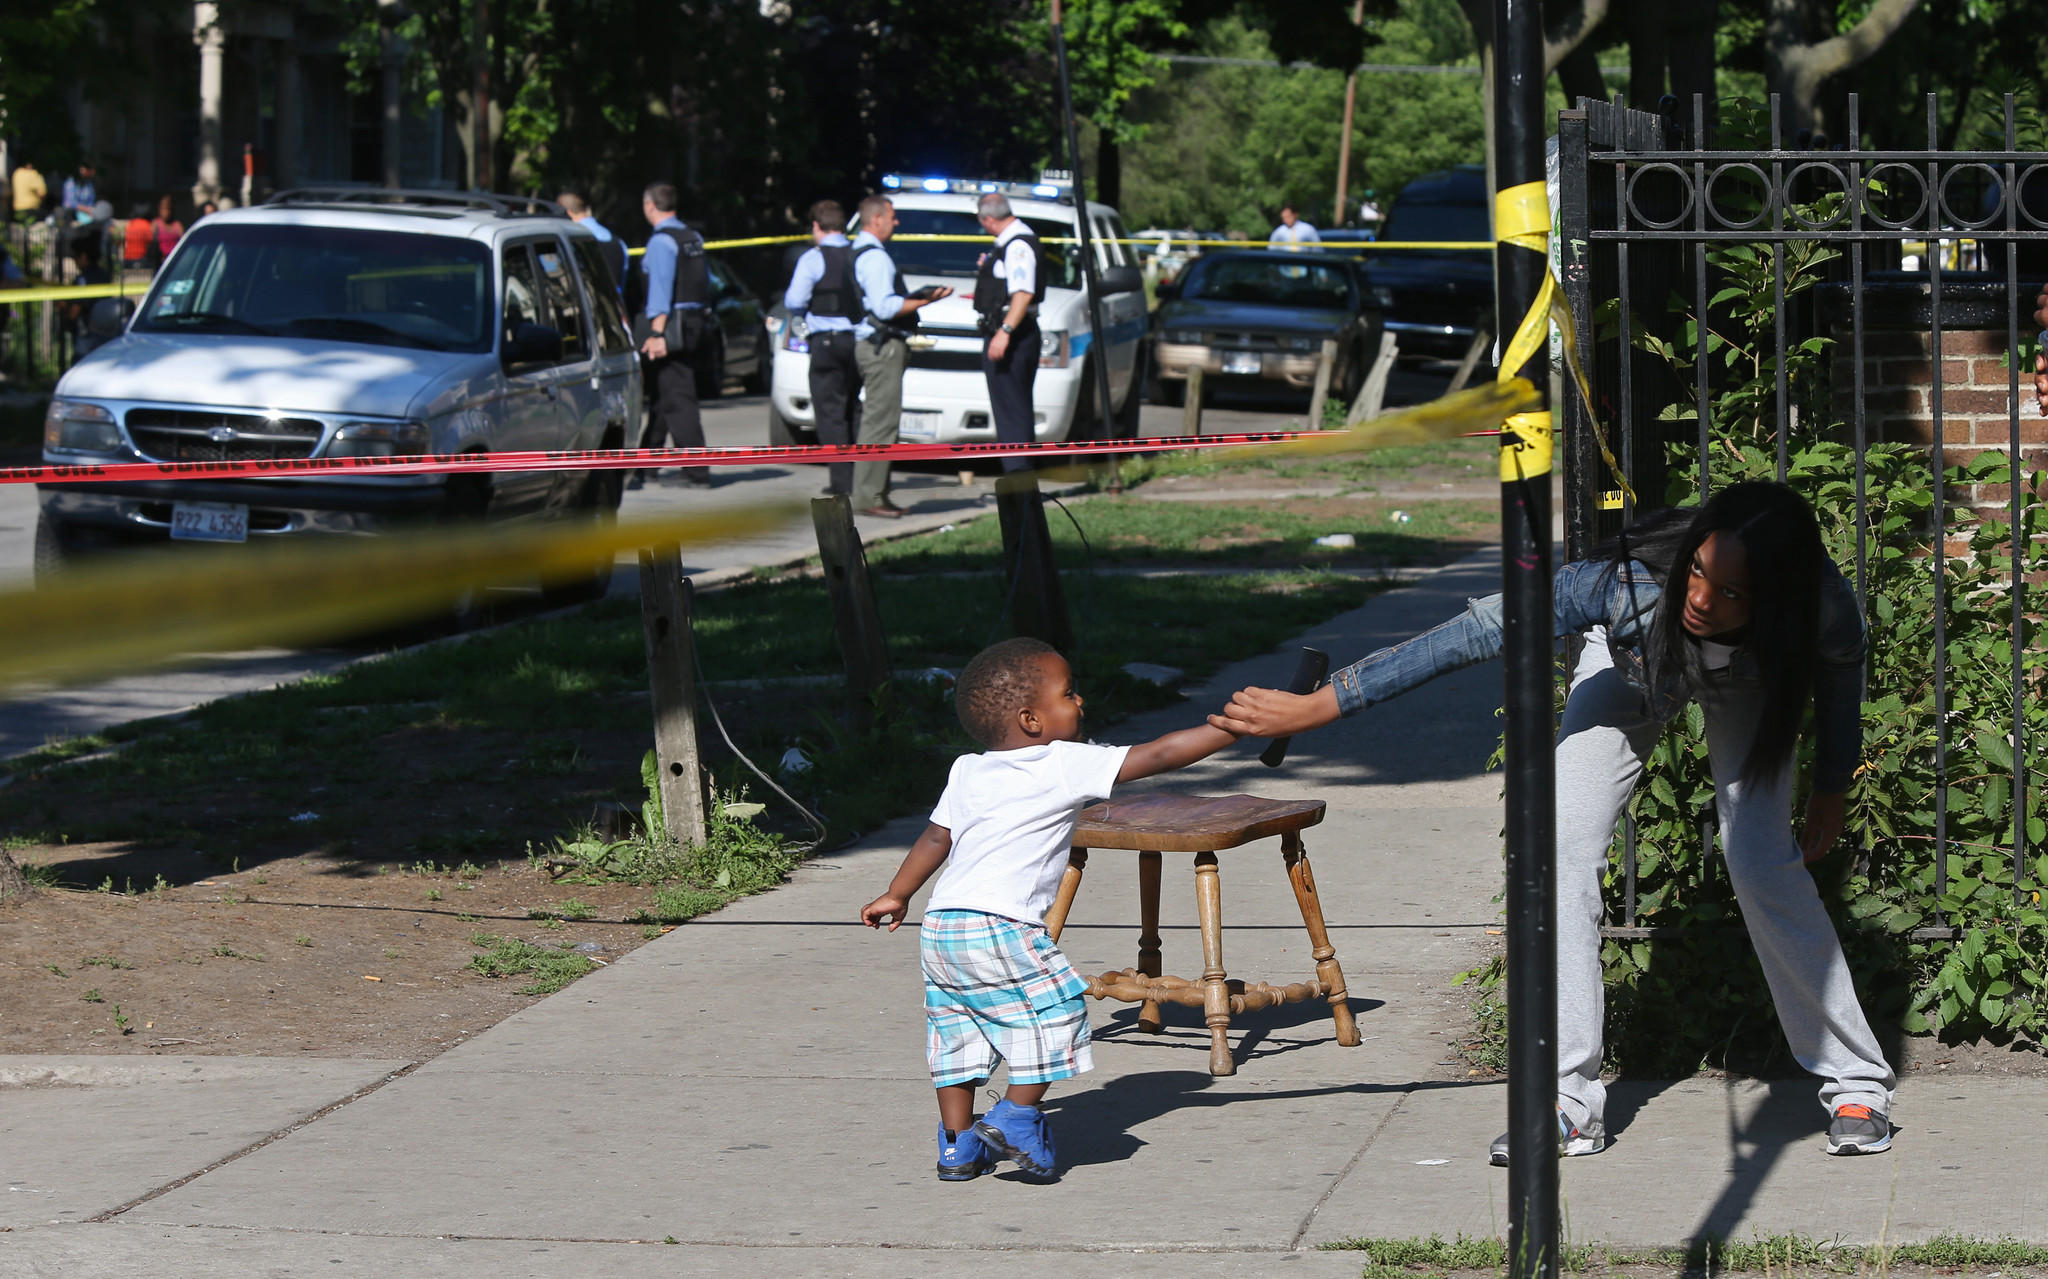 A woman grabs a child as he crosses police tape at the scene of a double-shooting in the 3800 block of West Monroe Street.